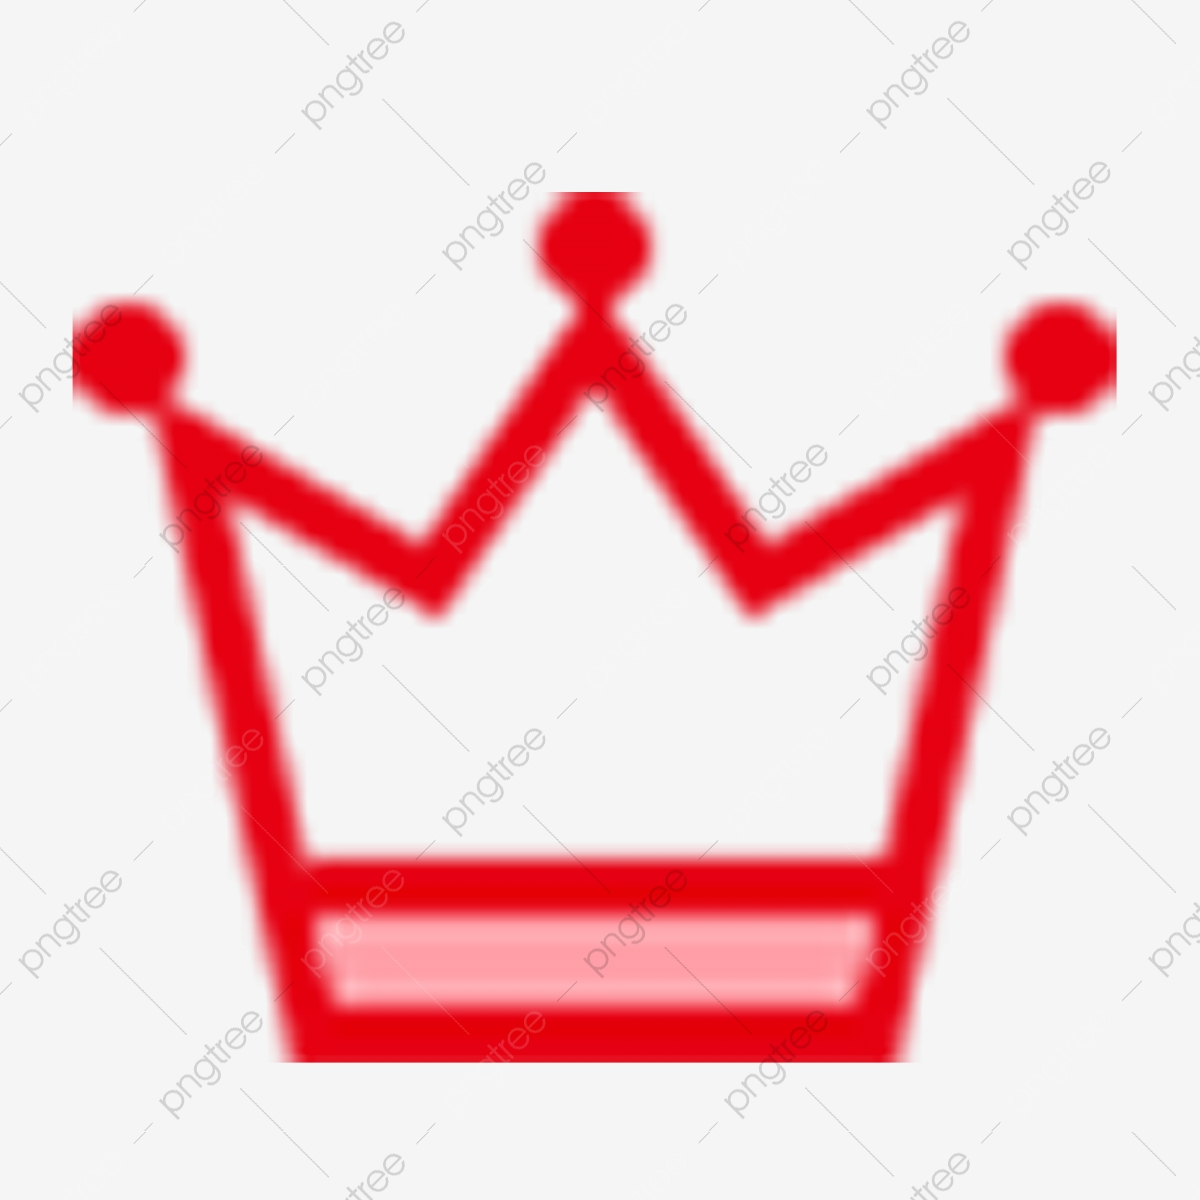 Red Crown Icon Design Crown King Cartoon Crown Png Transparent Clipart Image And Psd File For Free Download Crown of queen elizabeth the queen mother king, red gold crown with pearls, red and gold crown, king, gold, crowns png. https pngtree com freepng red crown icon design 4483722 html